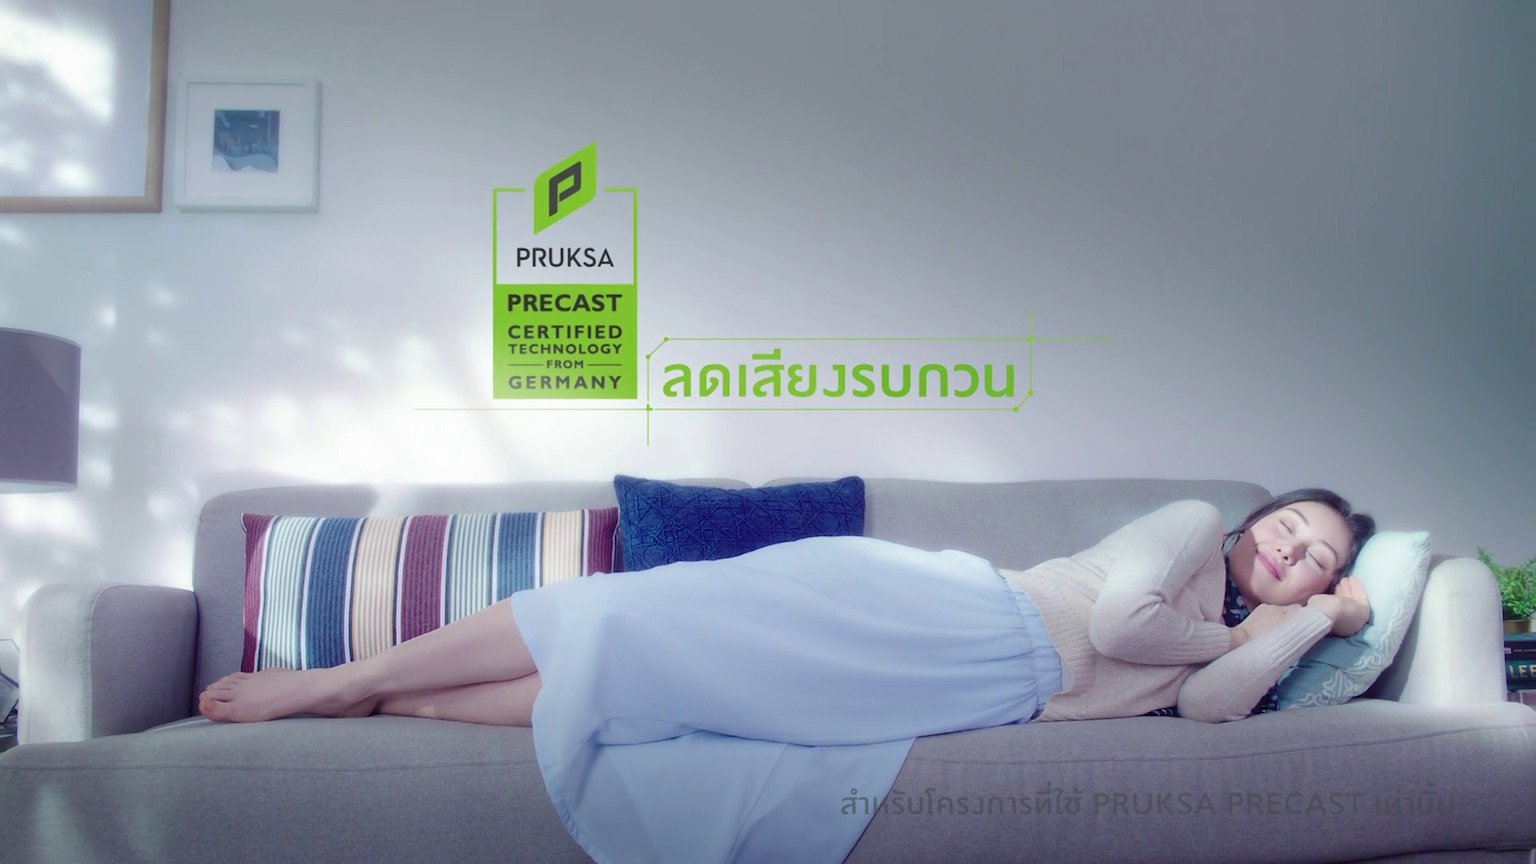 Let's Pruksa makes your dream house comes true